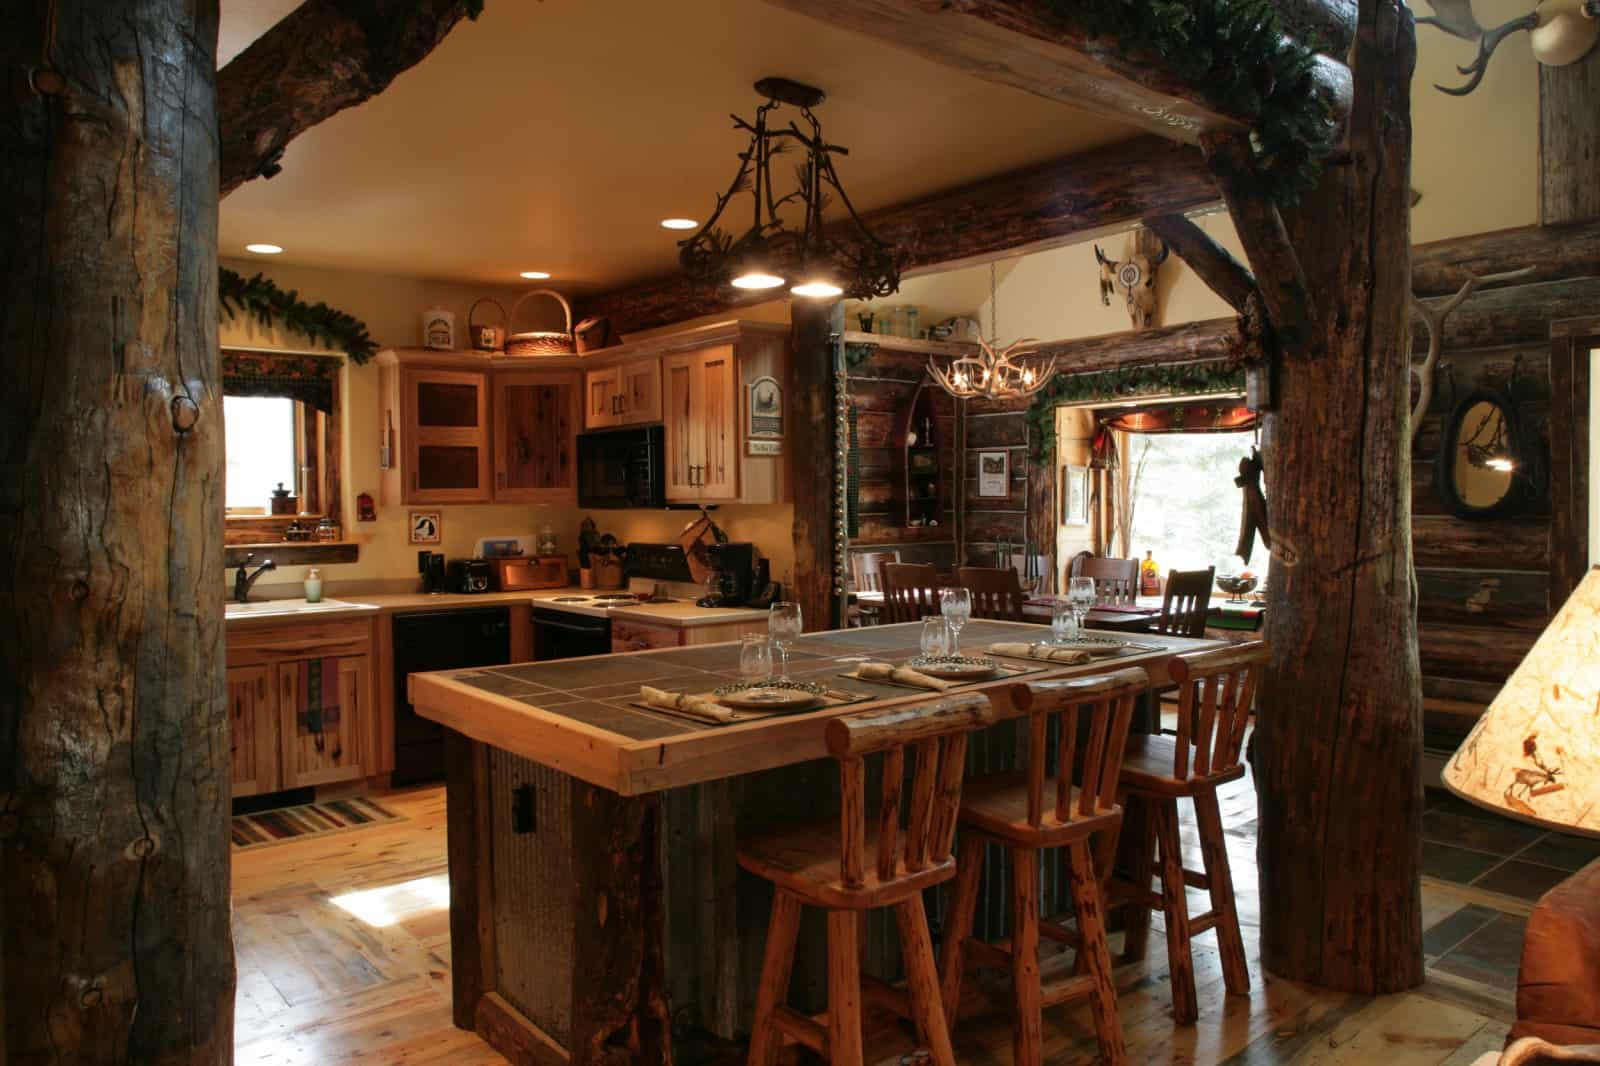 Interior design trends 2017 rustic kitchen decor house Log homes interiors